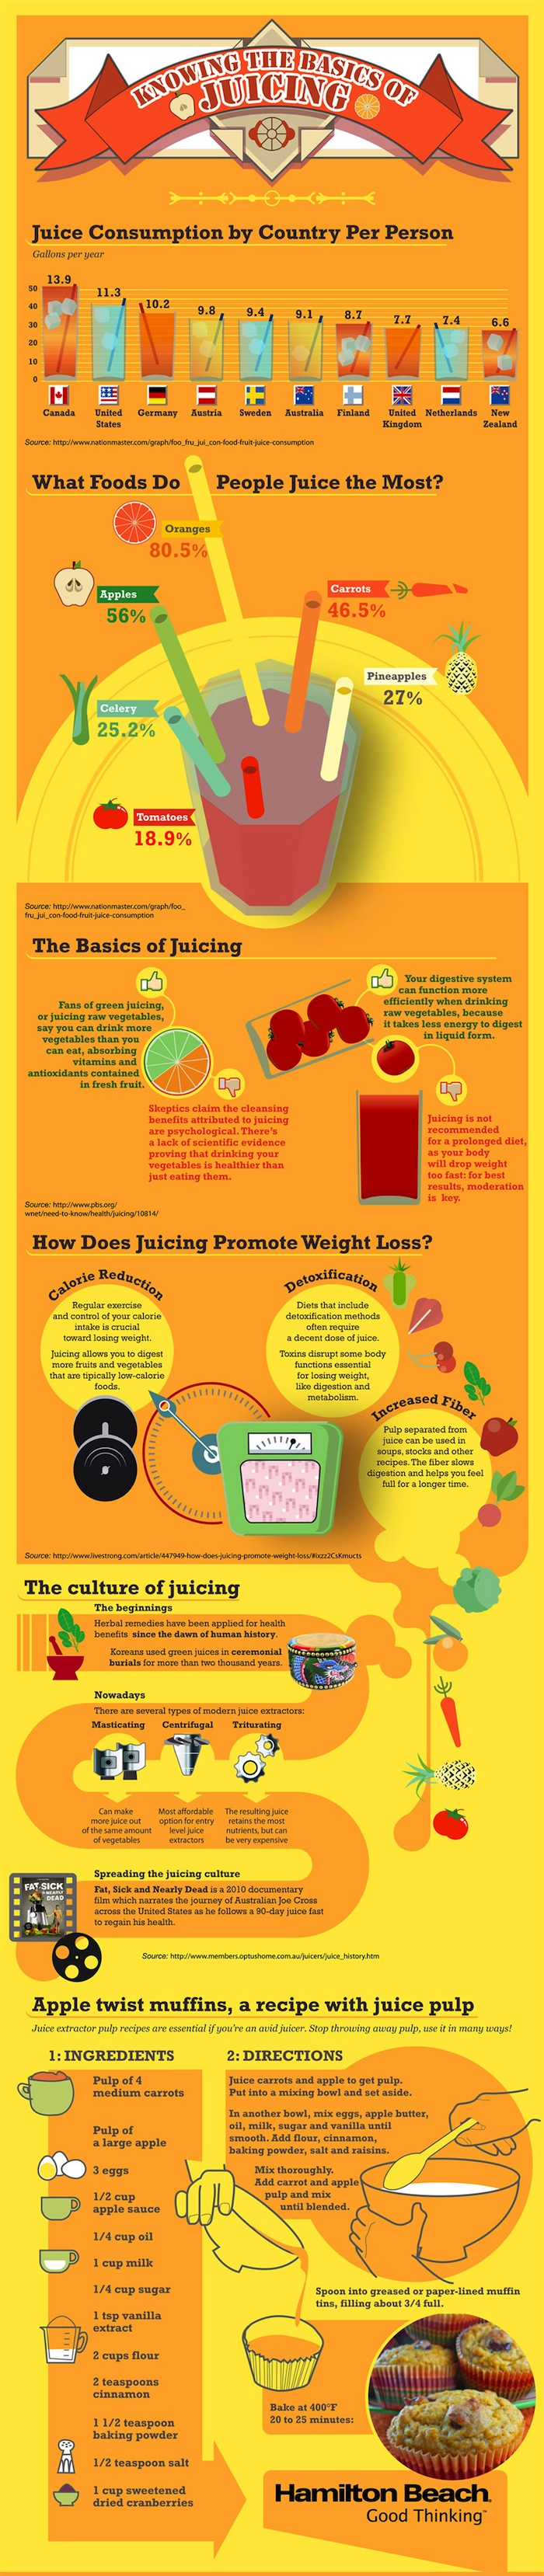 The Facts About Juicing: An Infographic